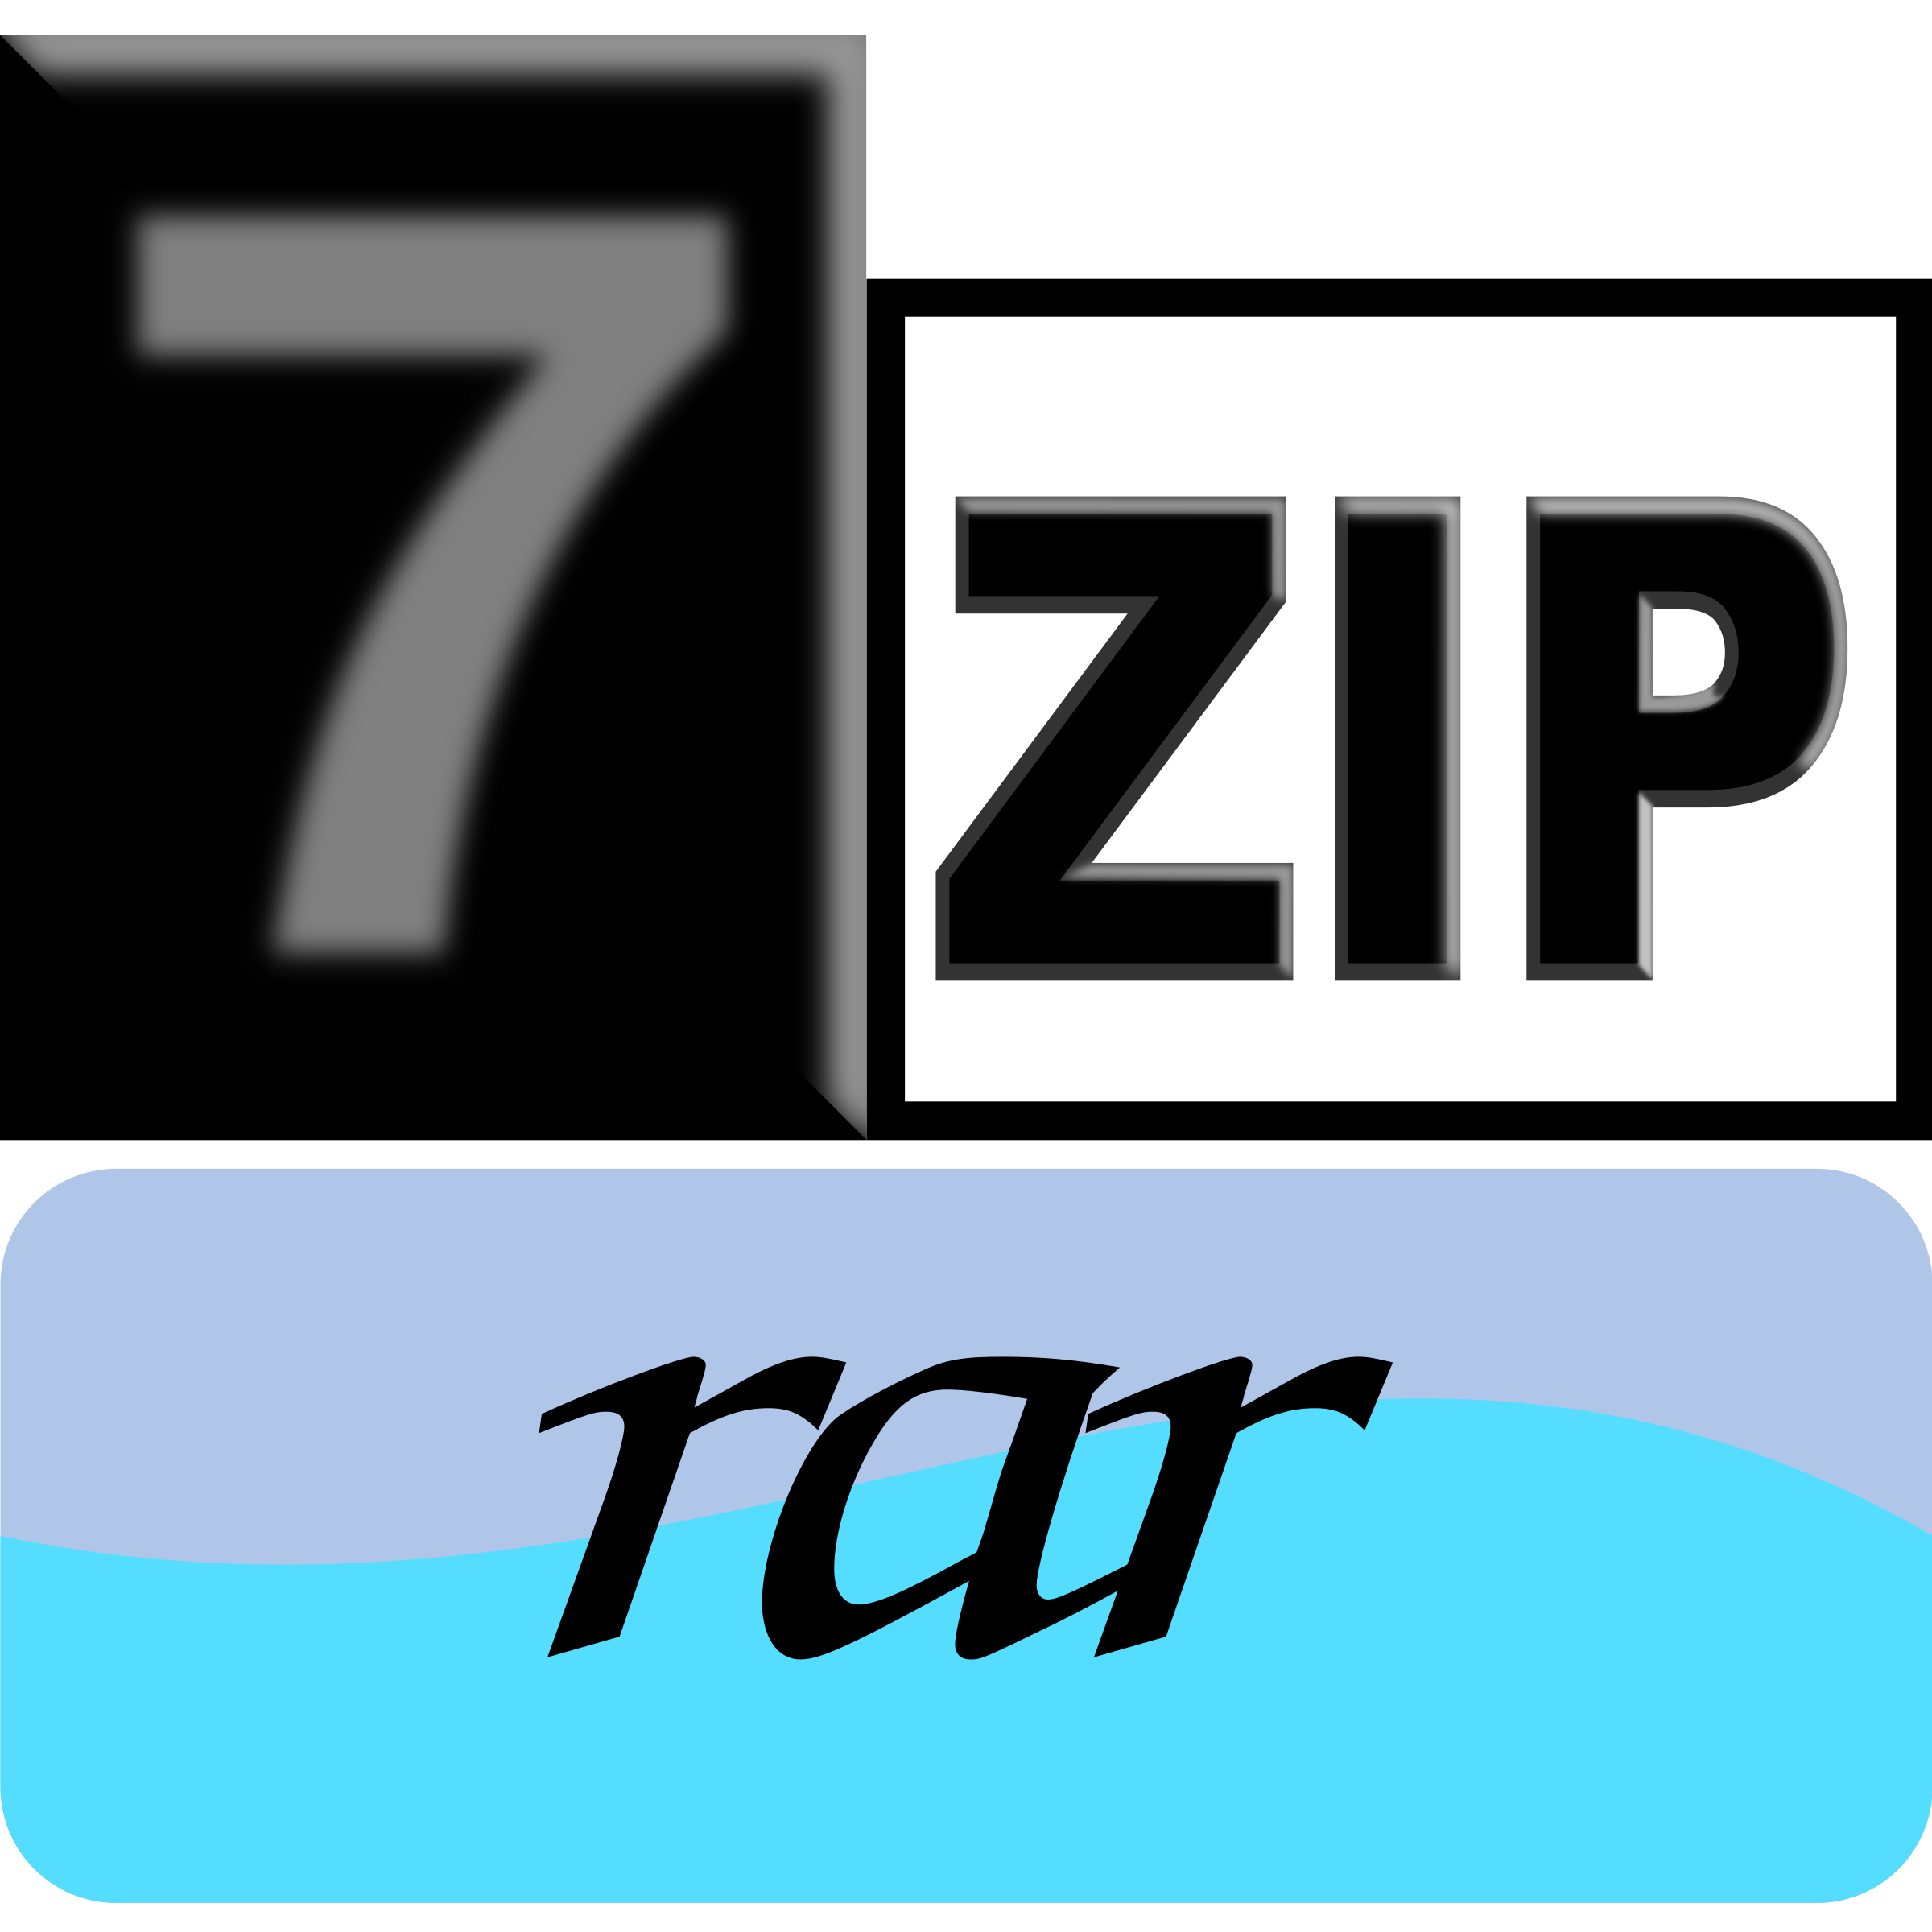 7zipClassic-rar by kg